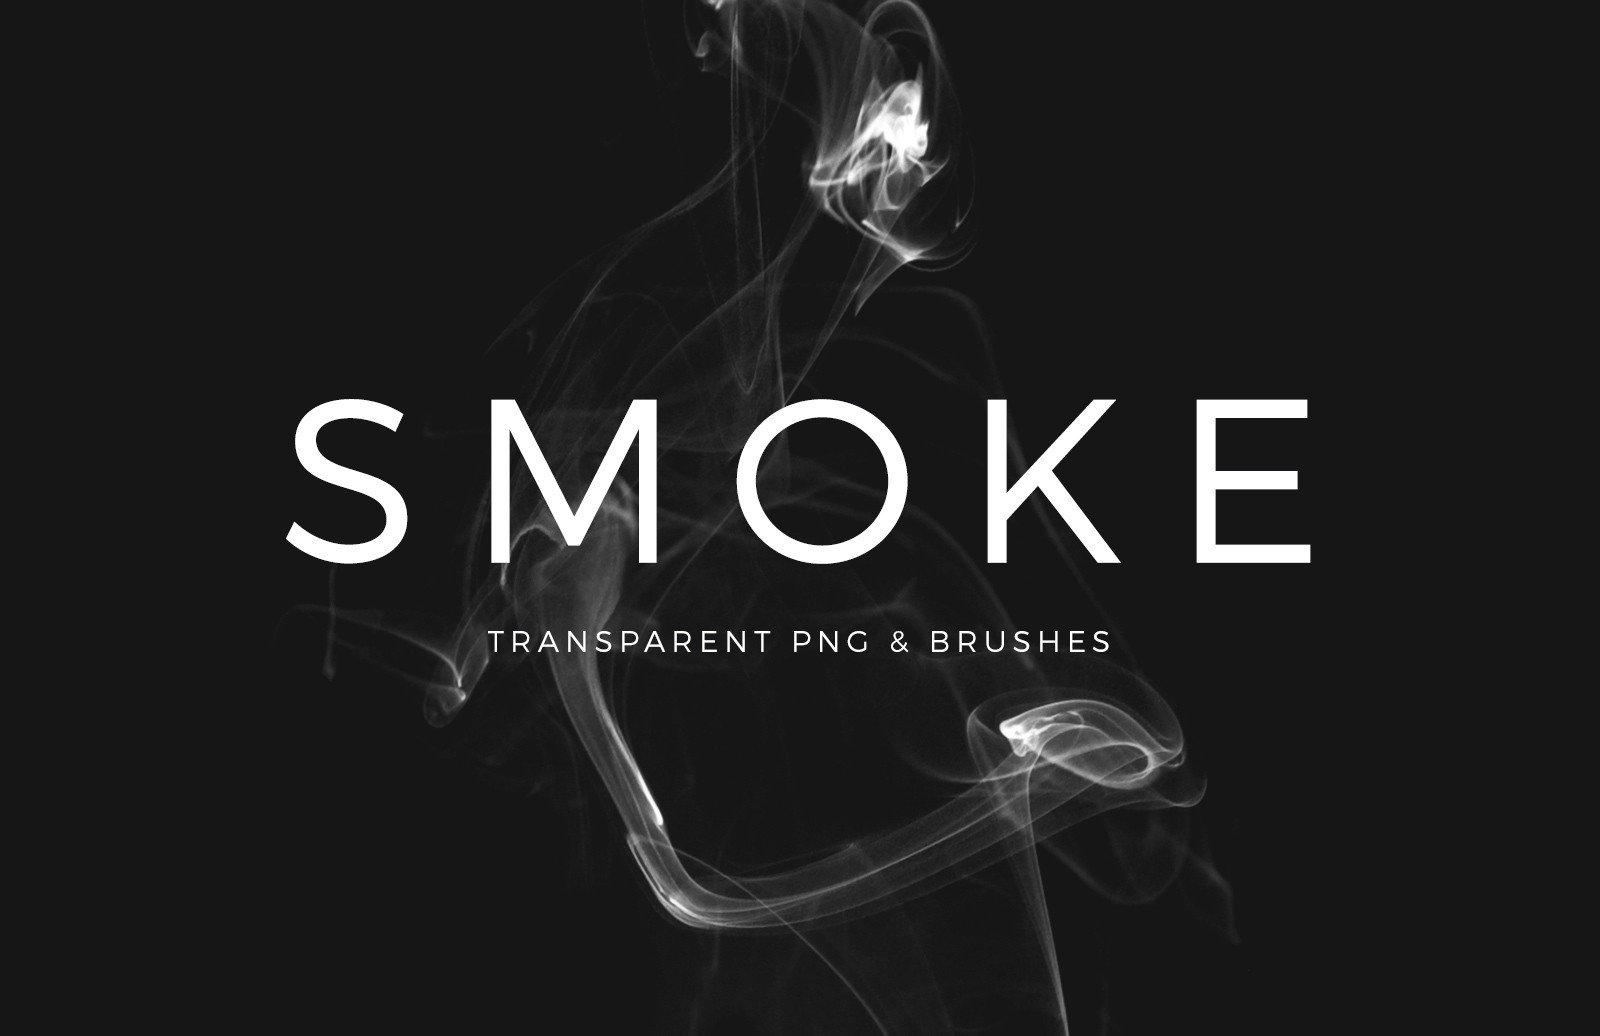 Smoke Transparent PNG & Brushes